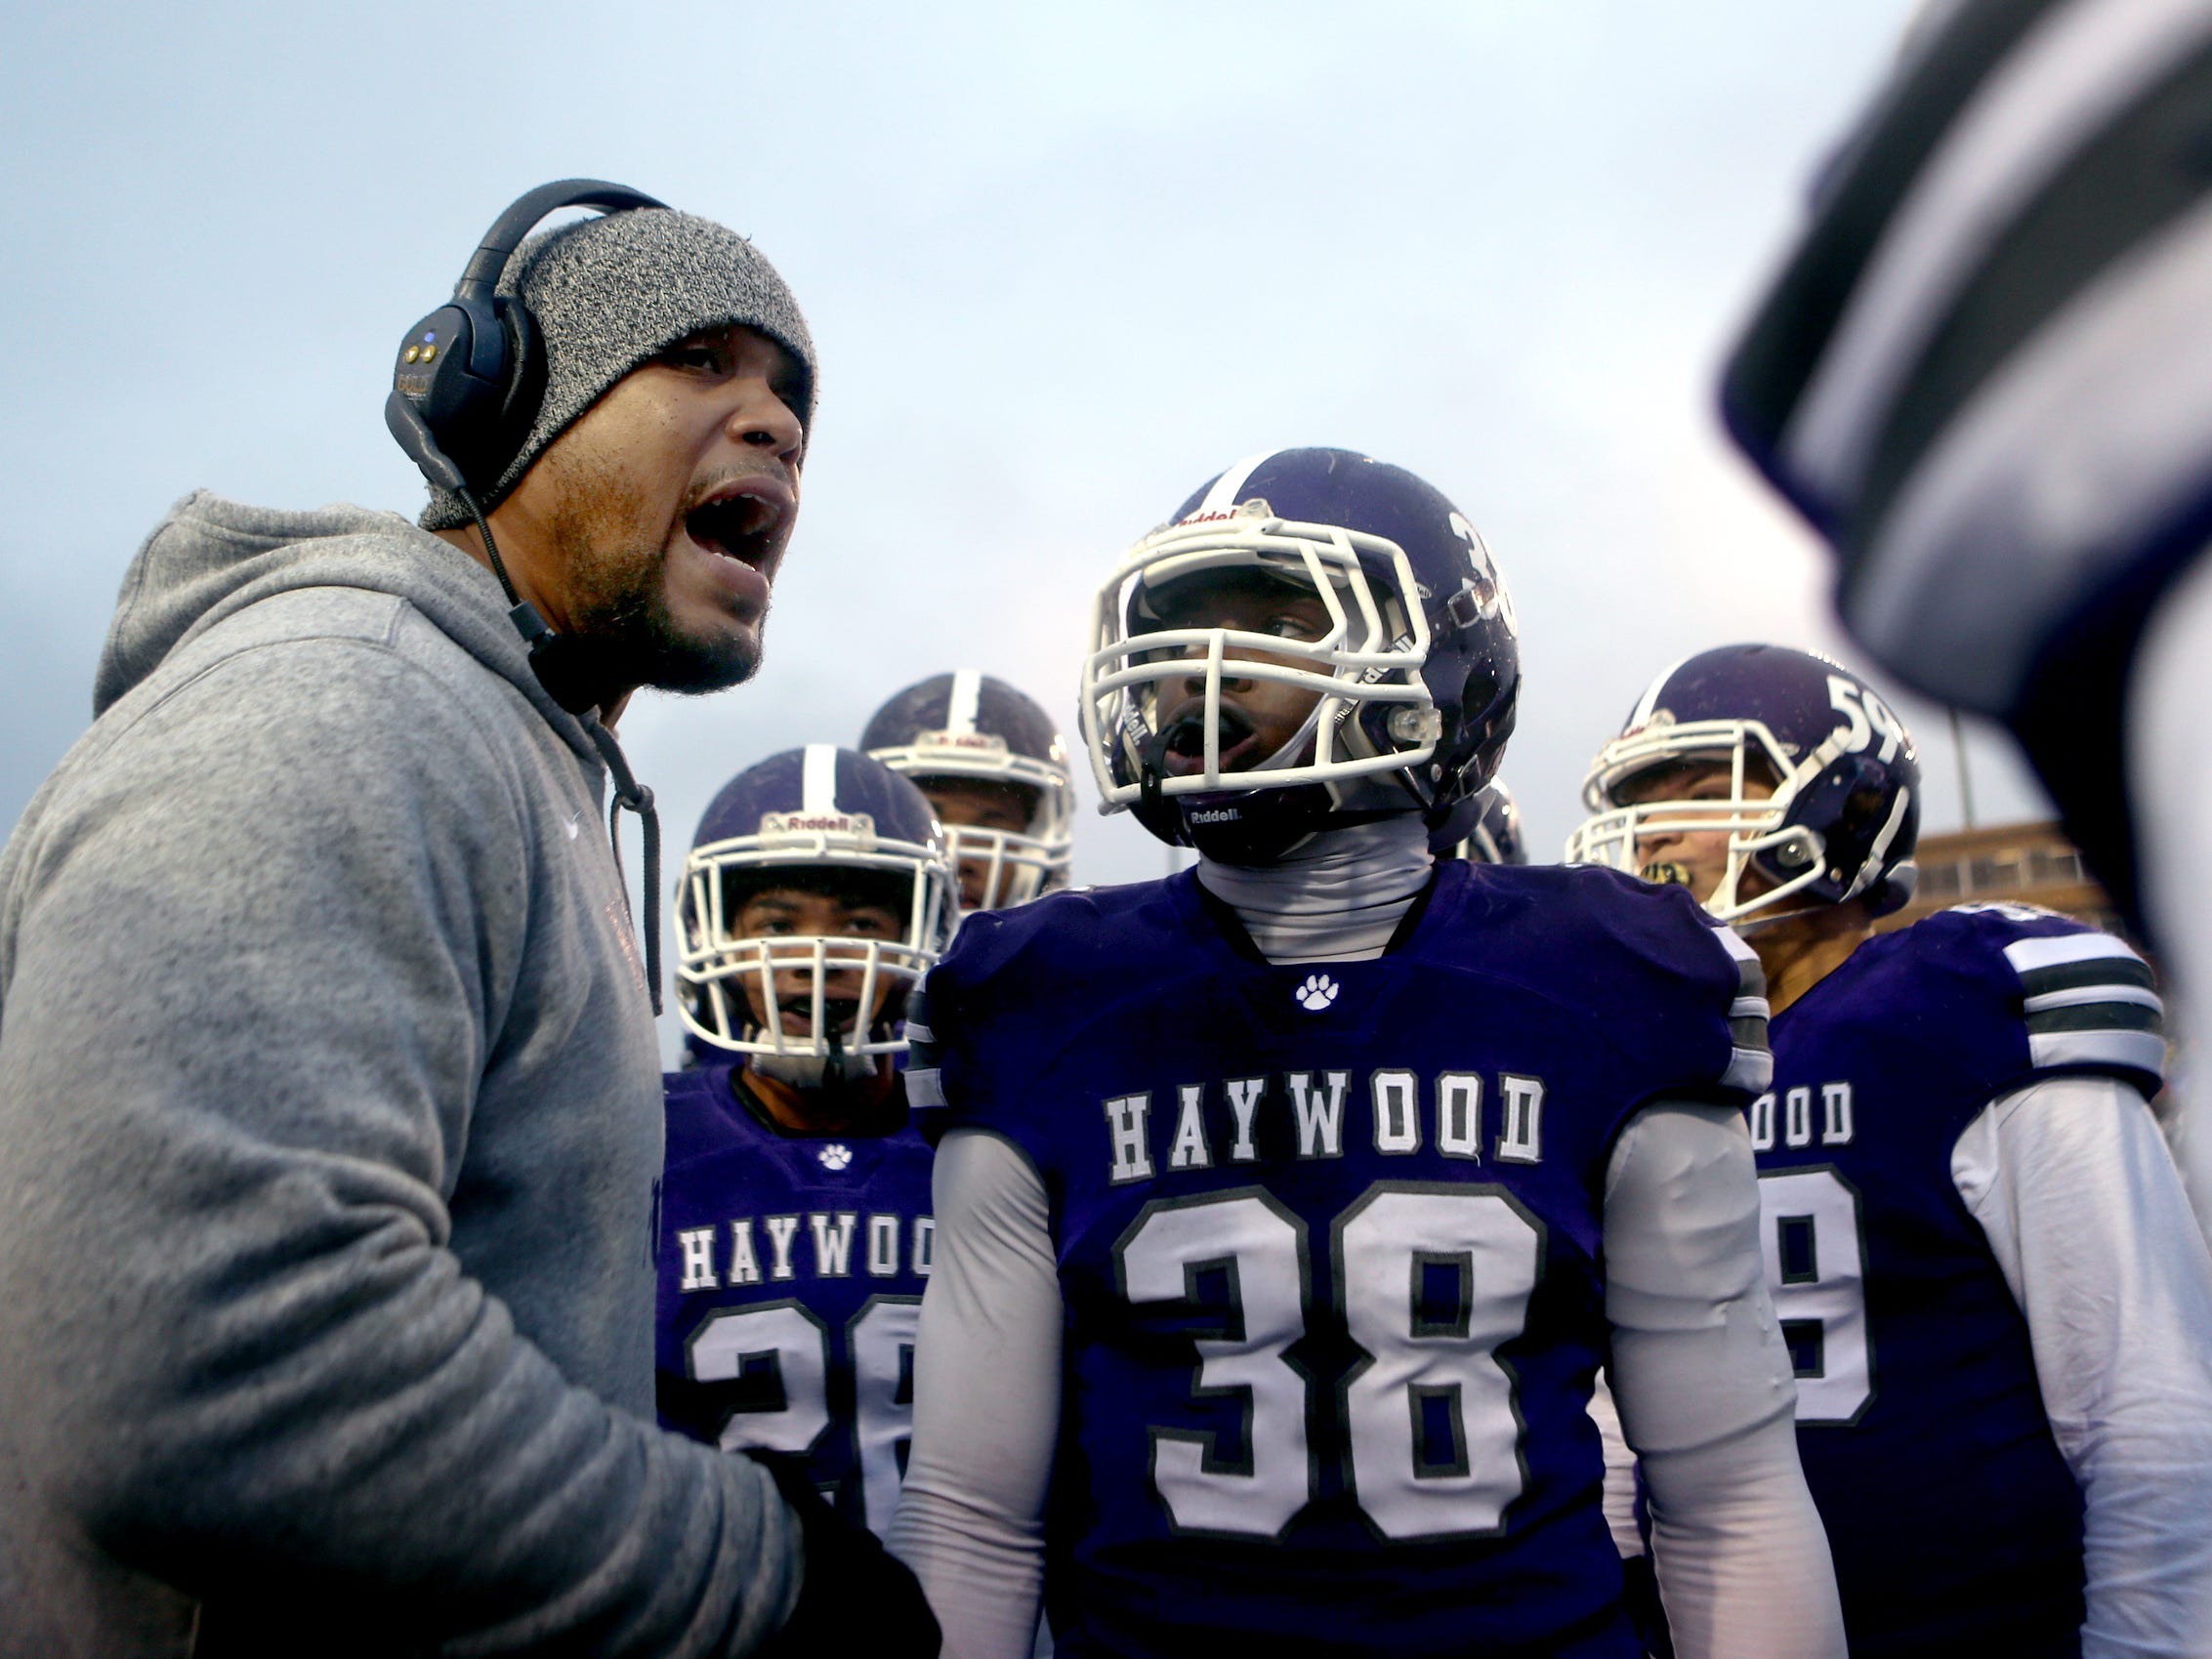 Haywood's head coach Steve Hookfin coaches players on the sidelines during the Class 4A BlueCross Bowl state championship game against Greeneville, Thursday, Nov. 29, 2018, at Tennessee Tech's Tucker Stadium in Cookeville, Tenn.